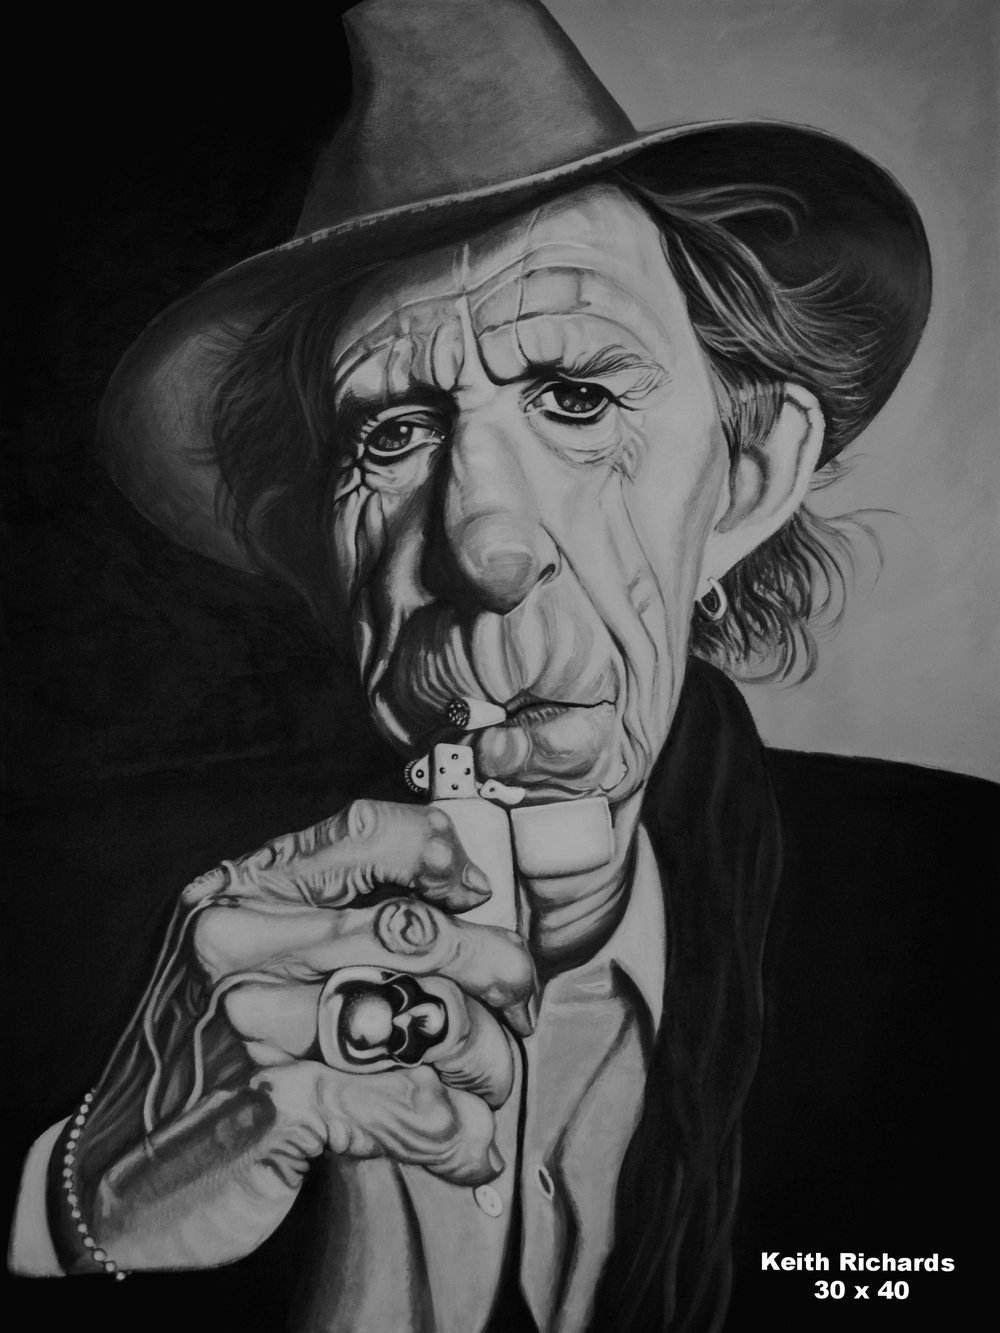 Keith Richards Half.jpg